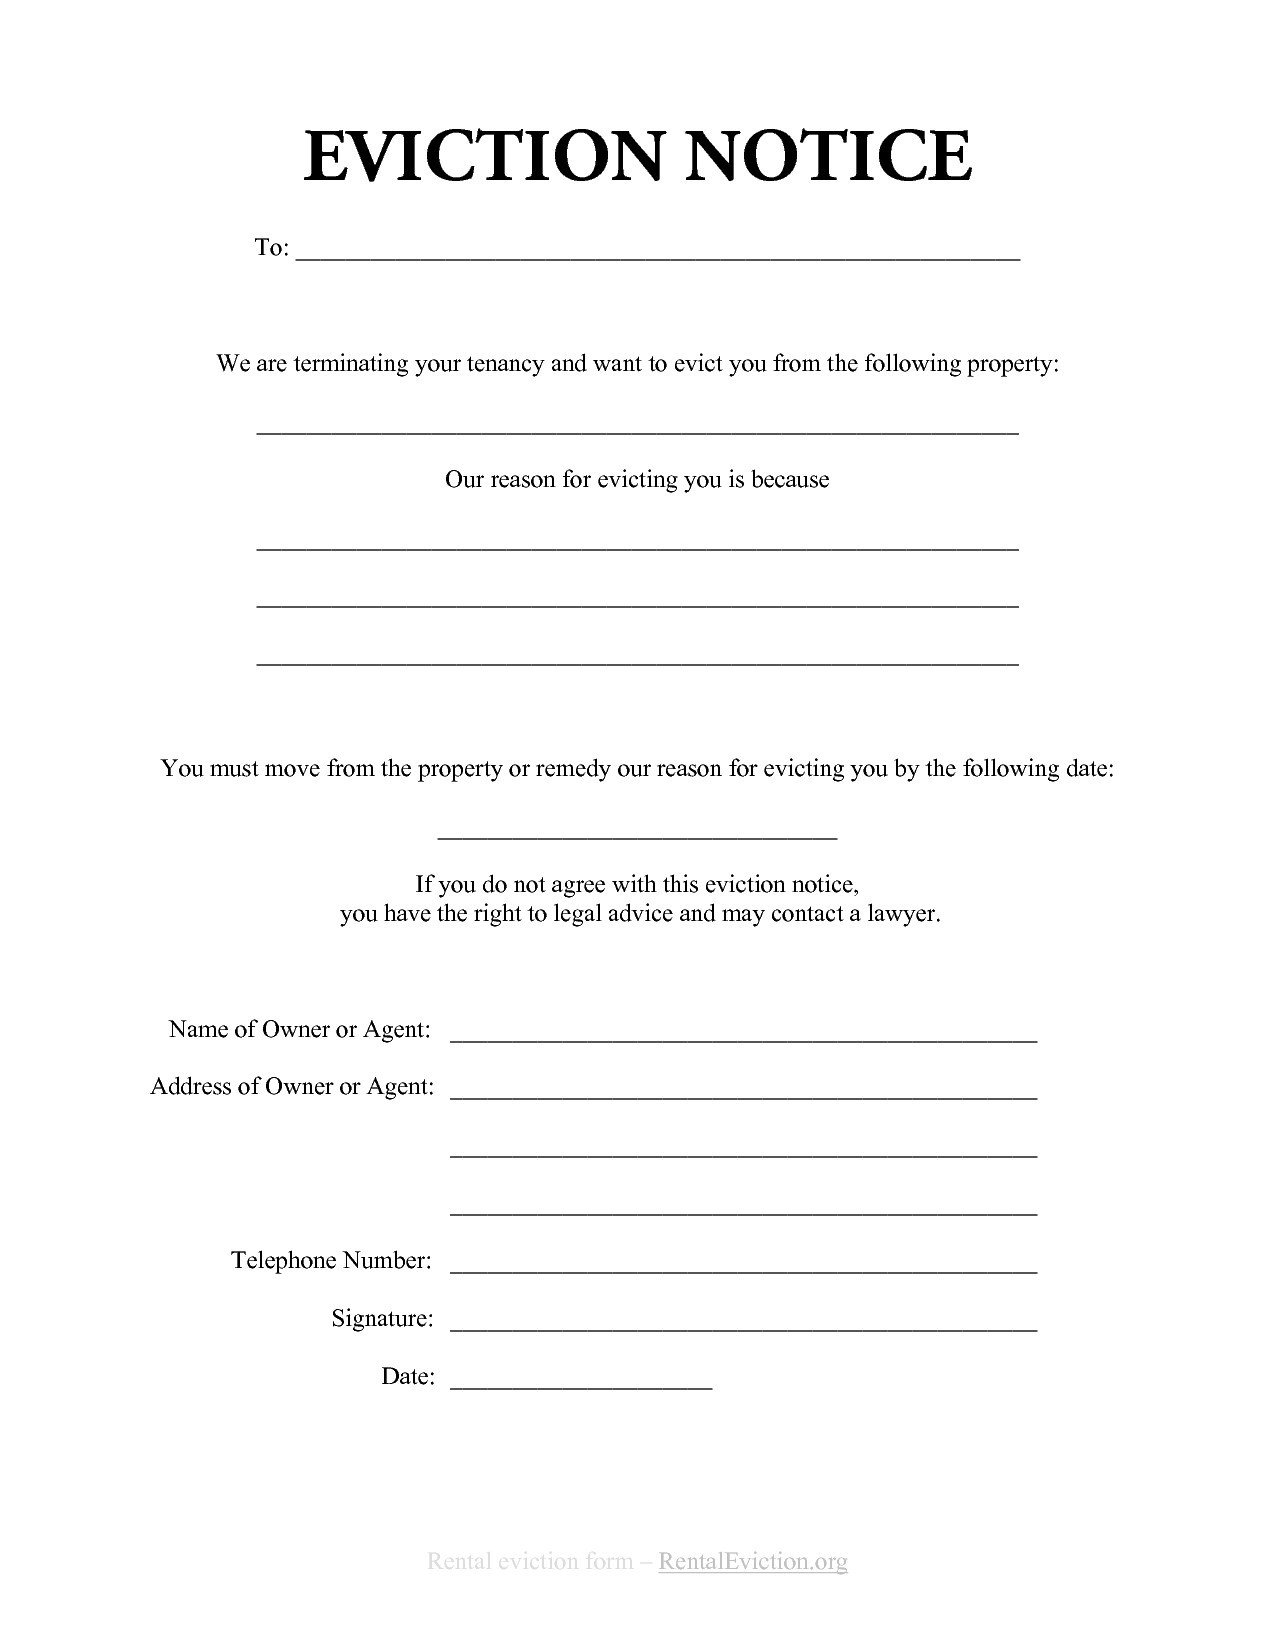 Free Eviction Notice Template Eviction Notice Template